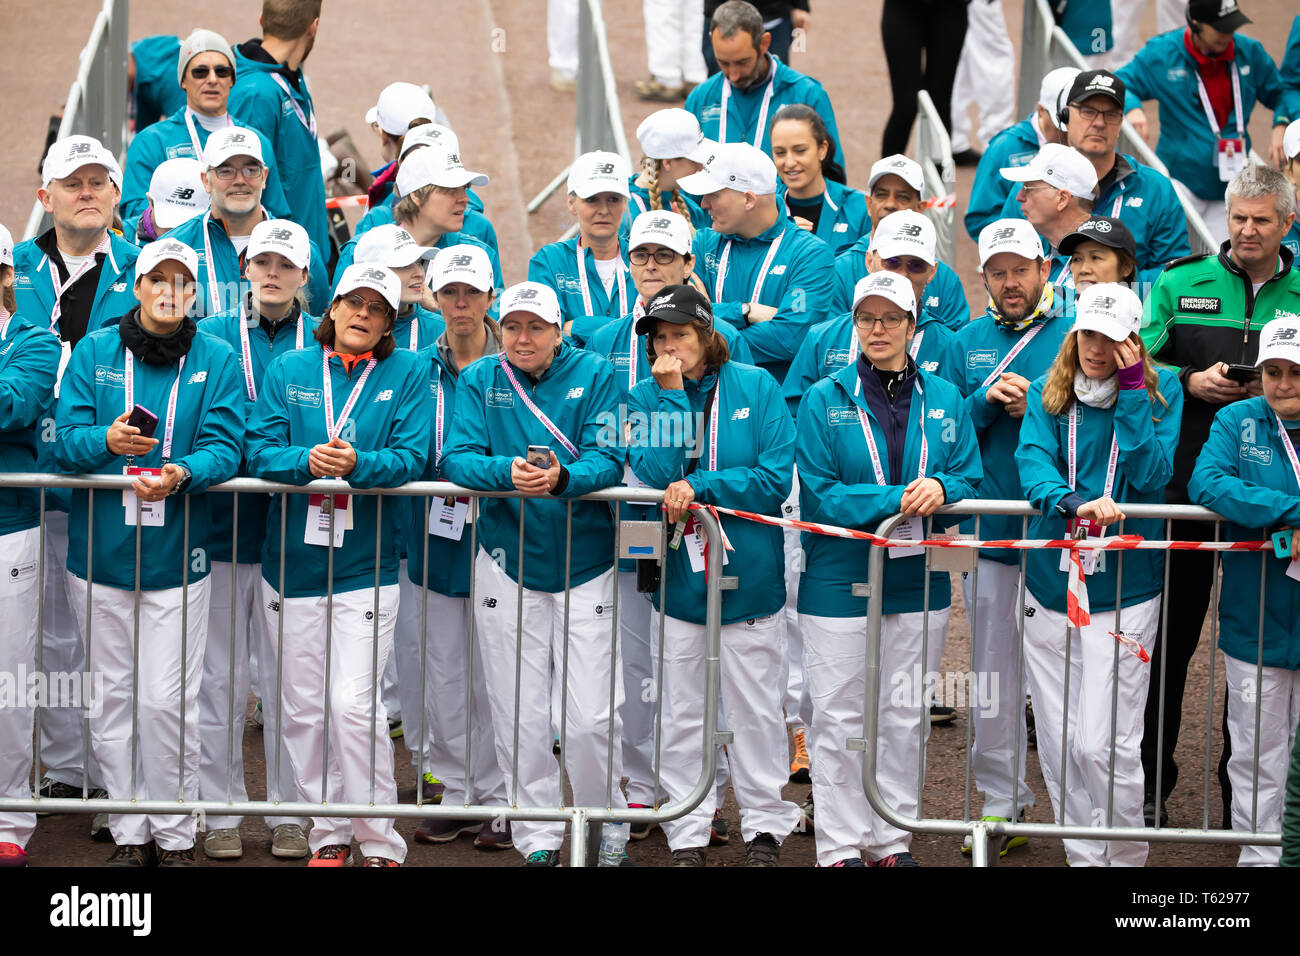 London,UK,28th April 2019, Stewards for The 39th London Marathon Credit: Keith Larby/Alamy Live News - Stock Image